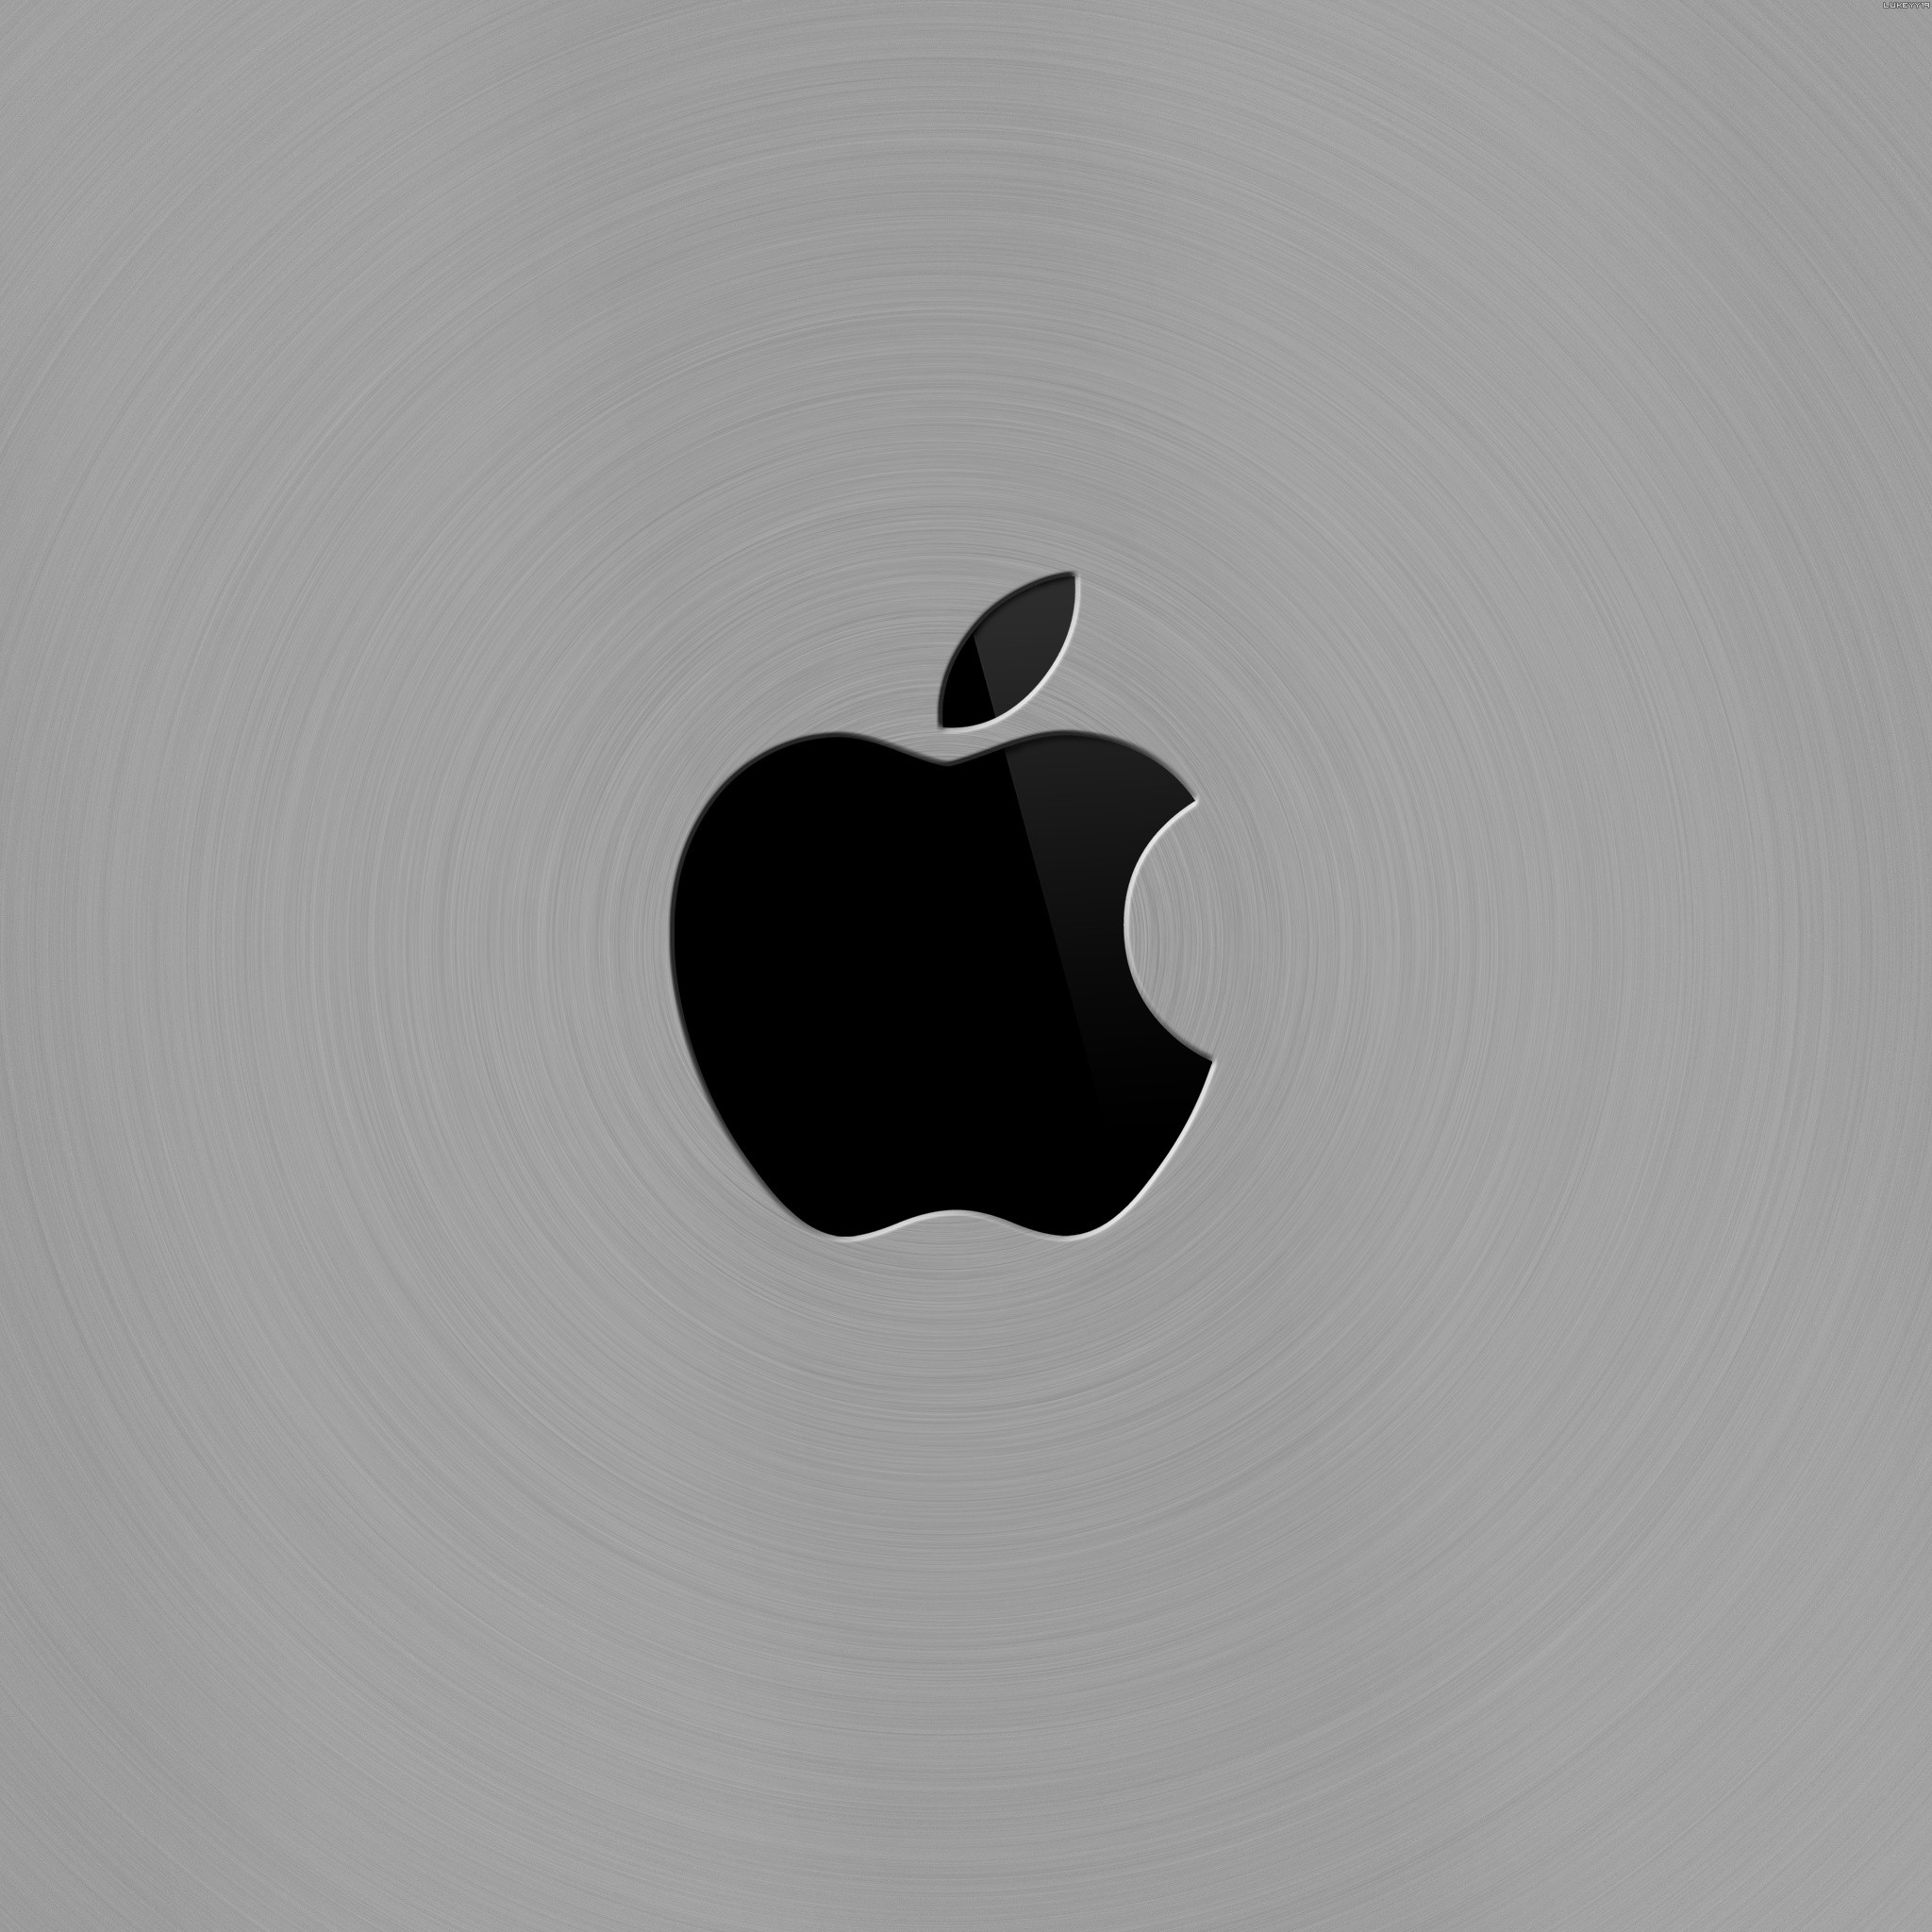 apple logo background (76+ pictures)